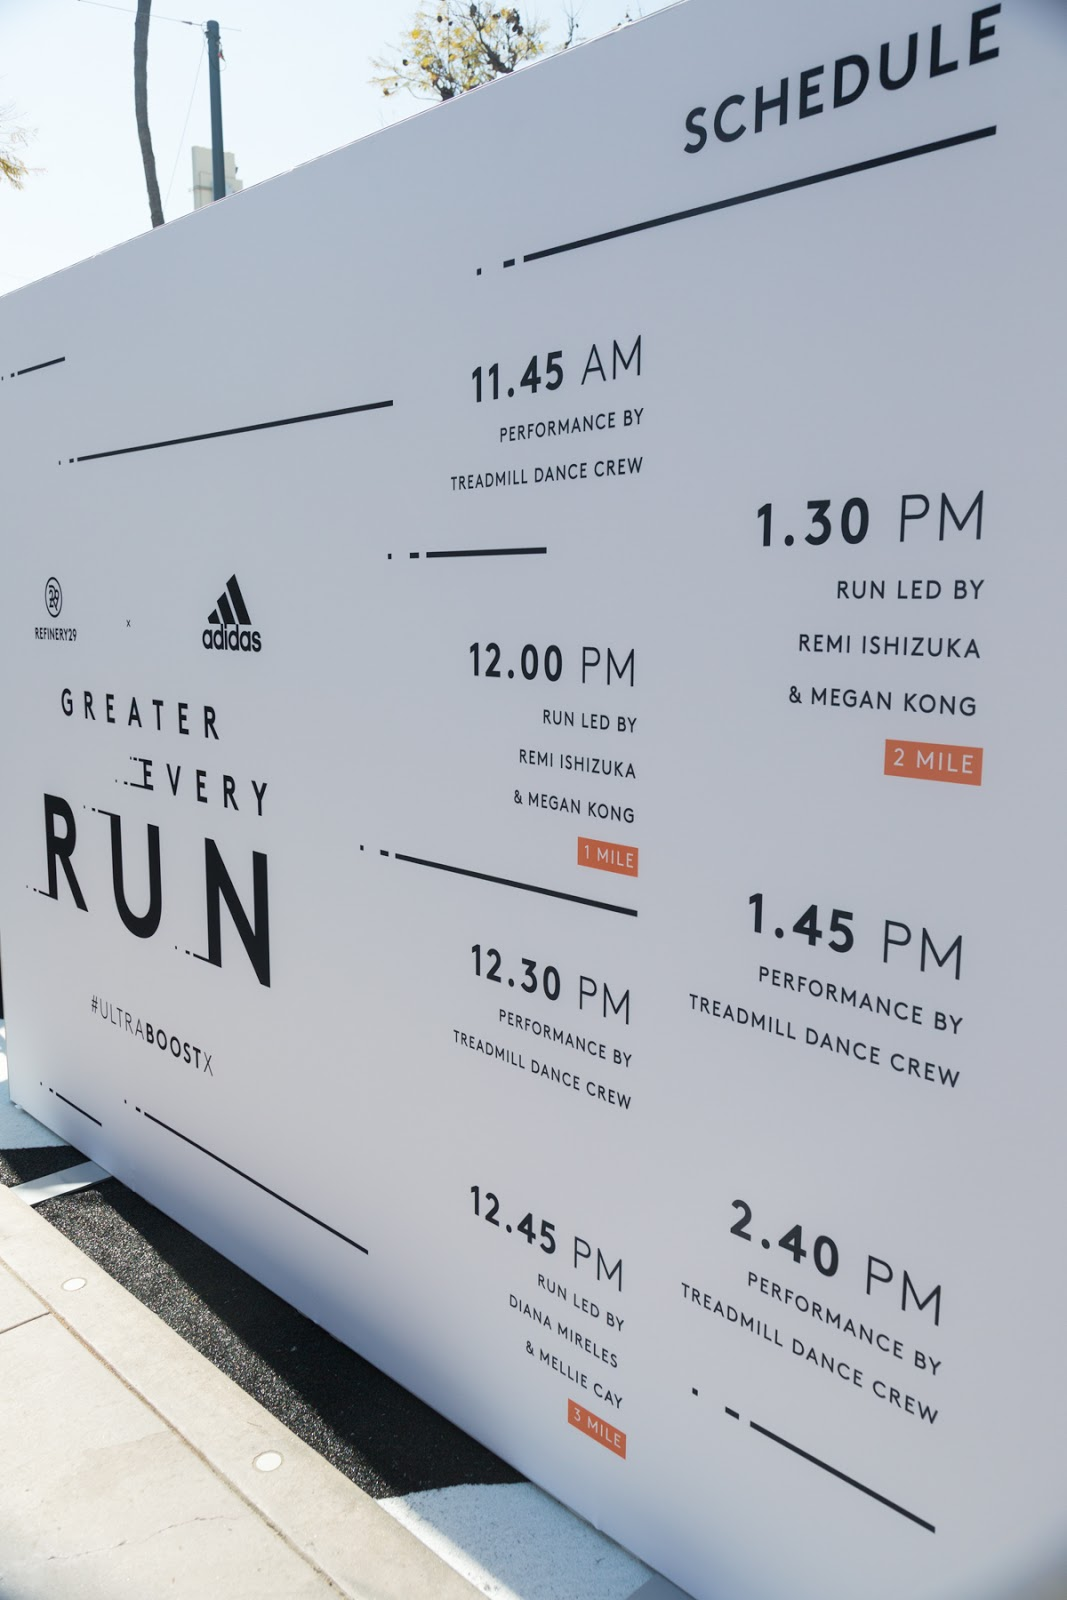 33e51158f1065 Refinery29 X adidas Running  Greater Every Run Event in Santa Monica ...